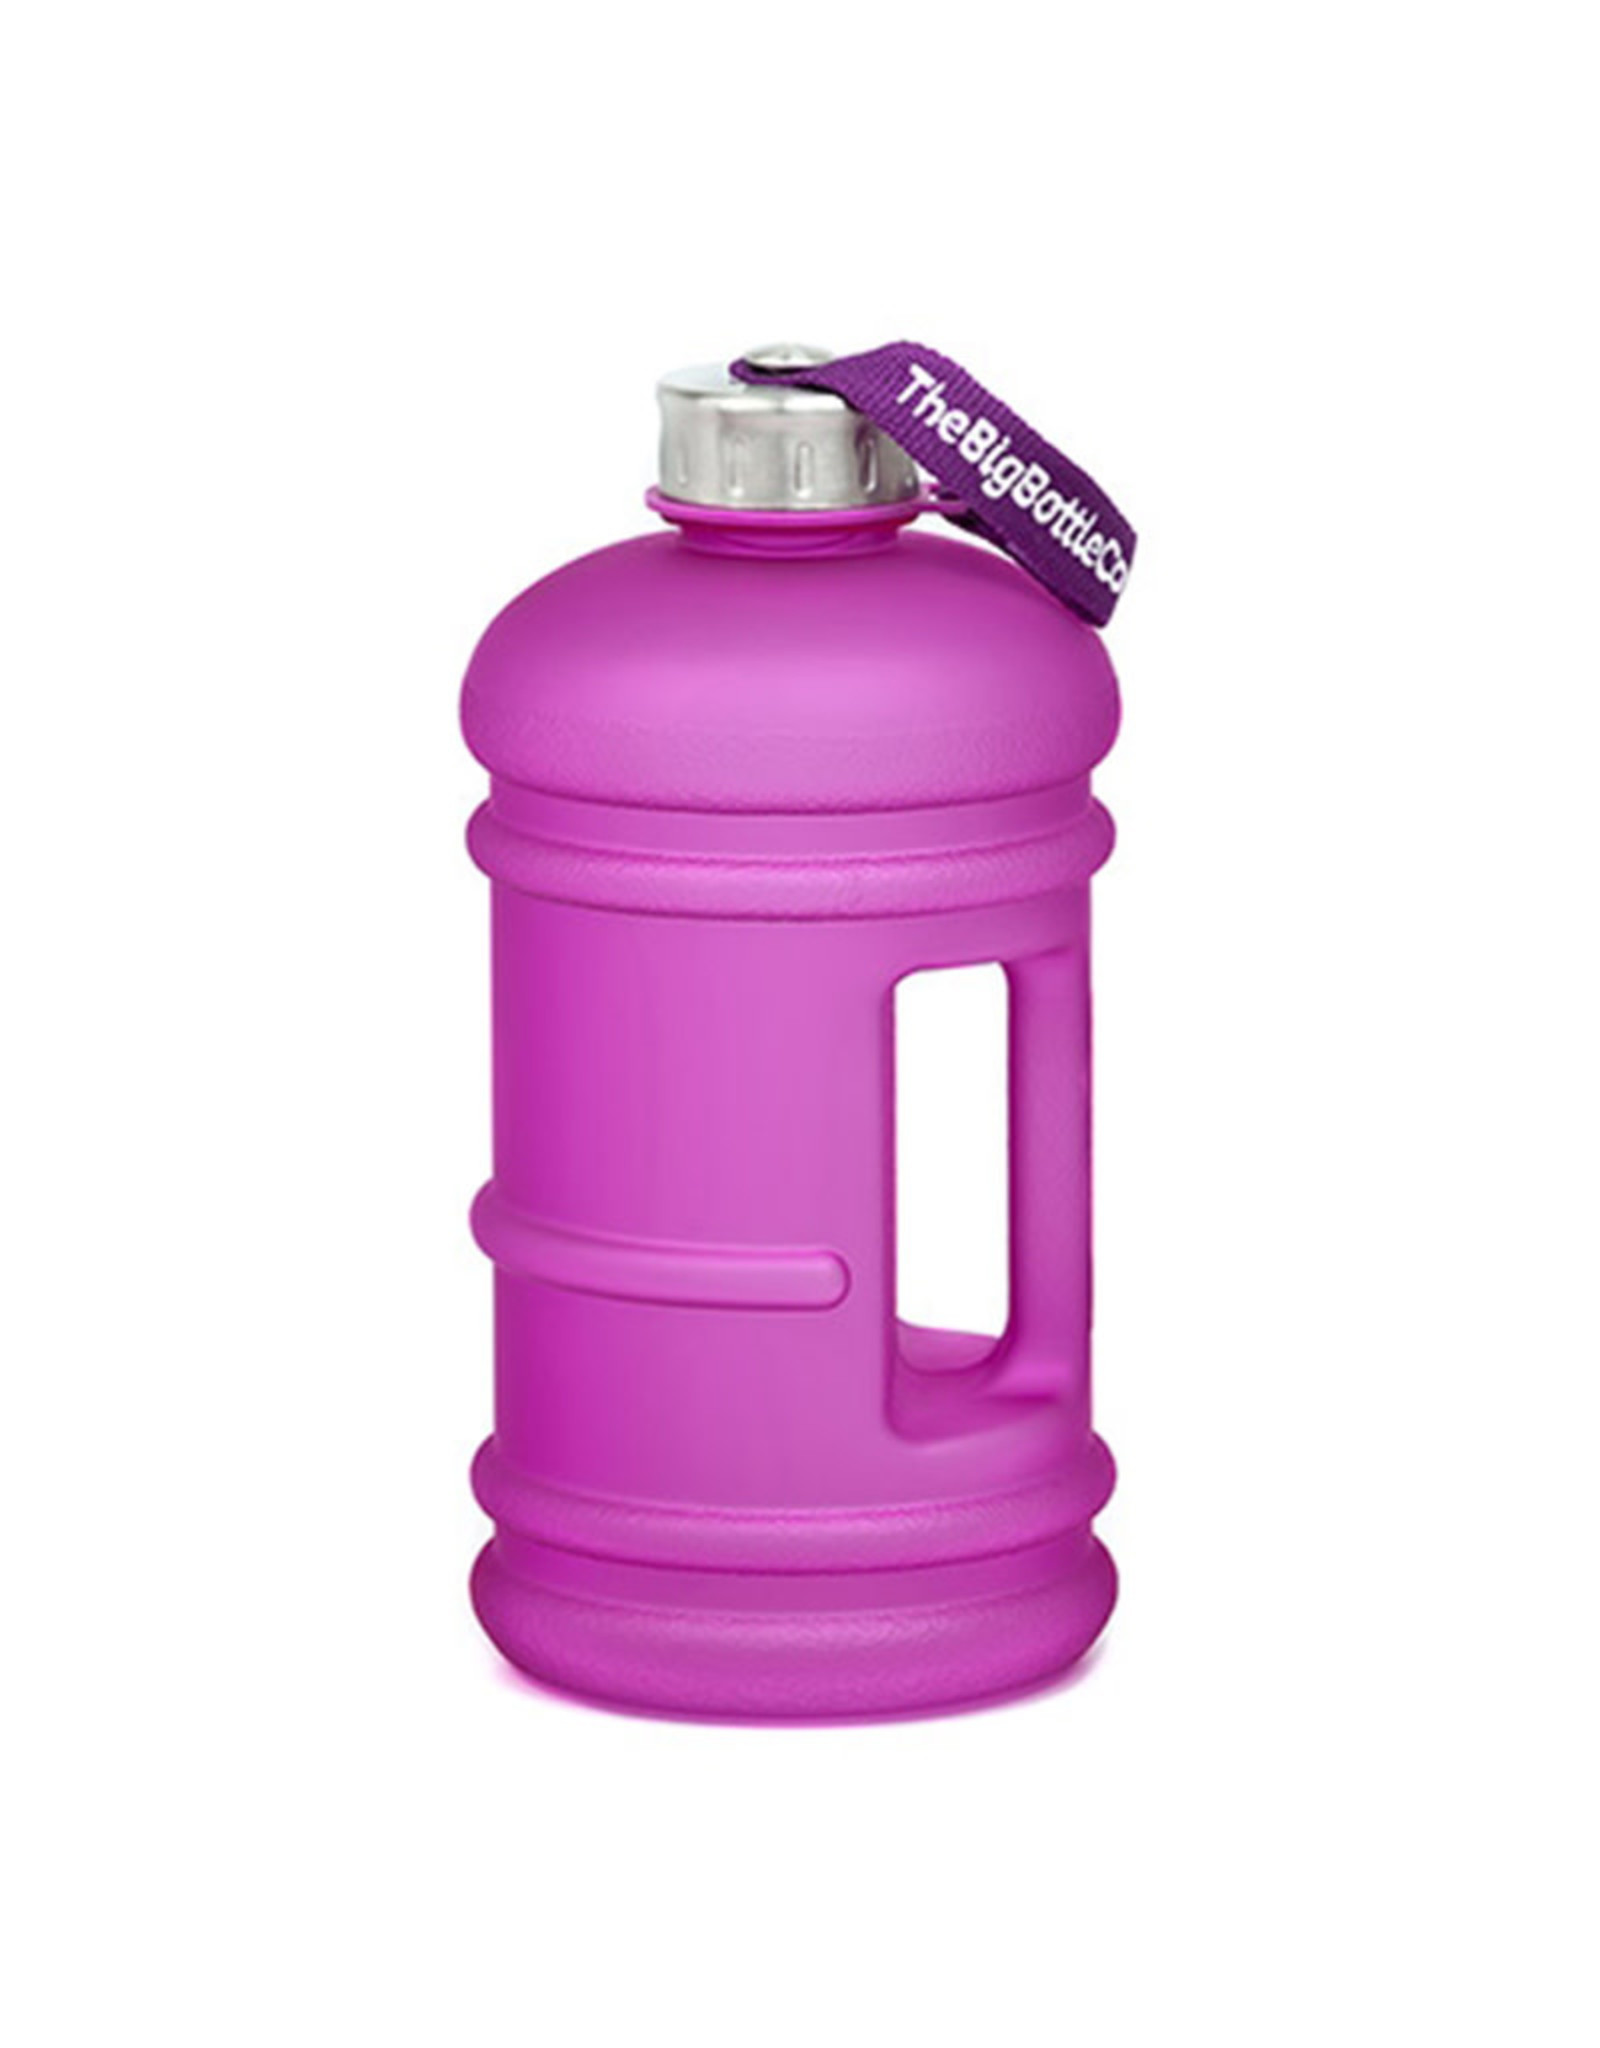 Big Bottle Co. Big Bottle Co. - Frosted Collection, Frosted Purple (2.2L)